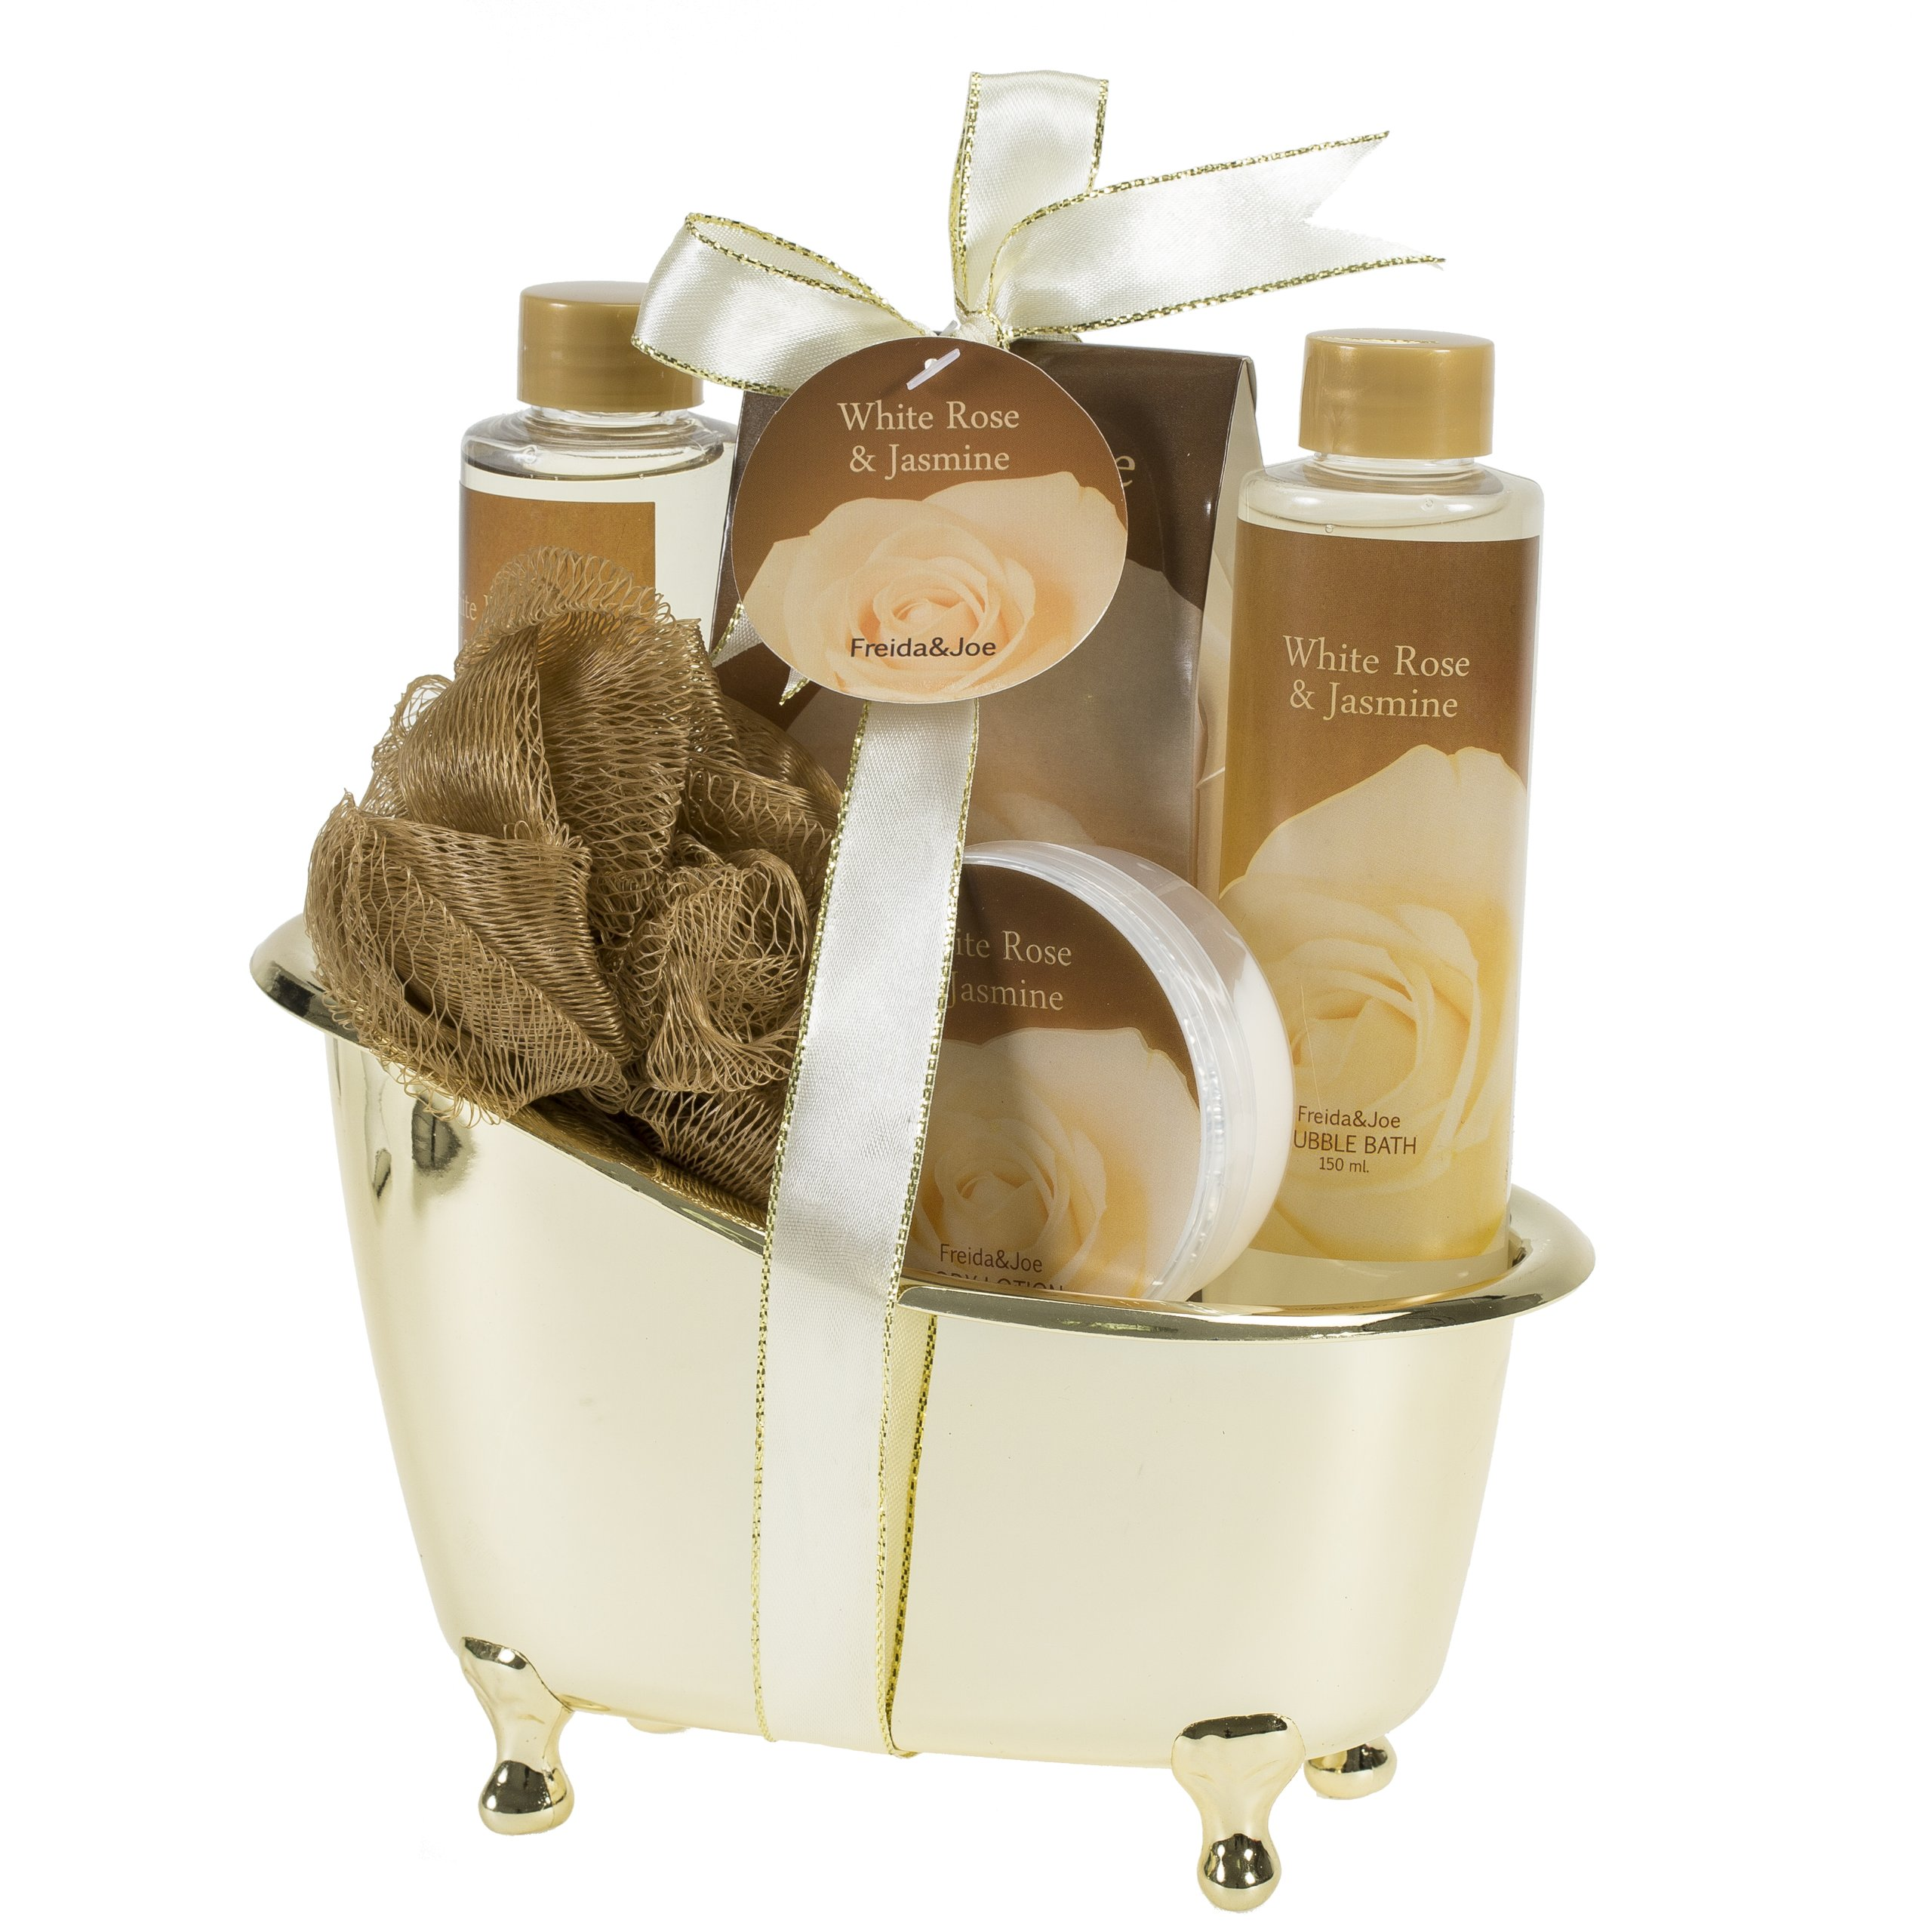 Luxurious & Elegant Bath Spa Gift Set For Women By Freida Joe – Deluxe White Rose Jasmine Gold Tub Spa Gift Basket, Hydrating & Refreshing Bathroom Gel, Bubble Bath, Lotion & Salts – Luxury Gift Idea